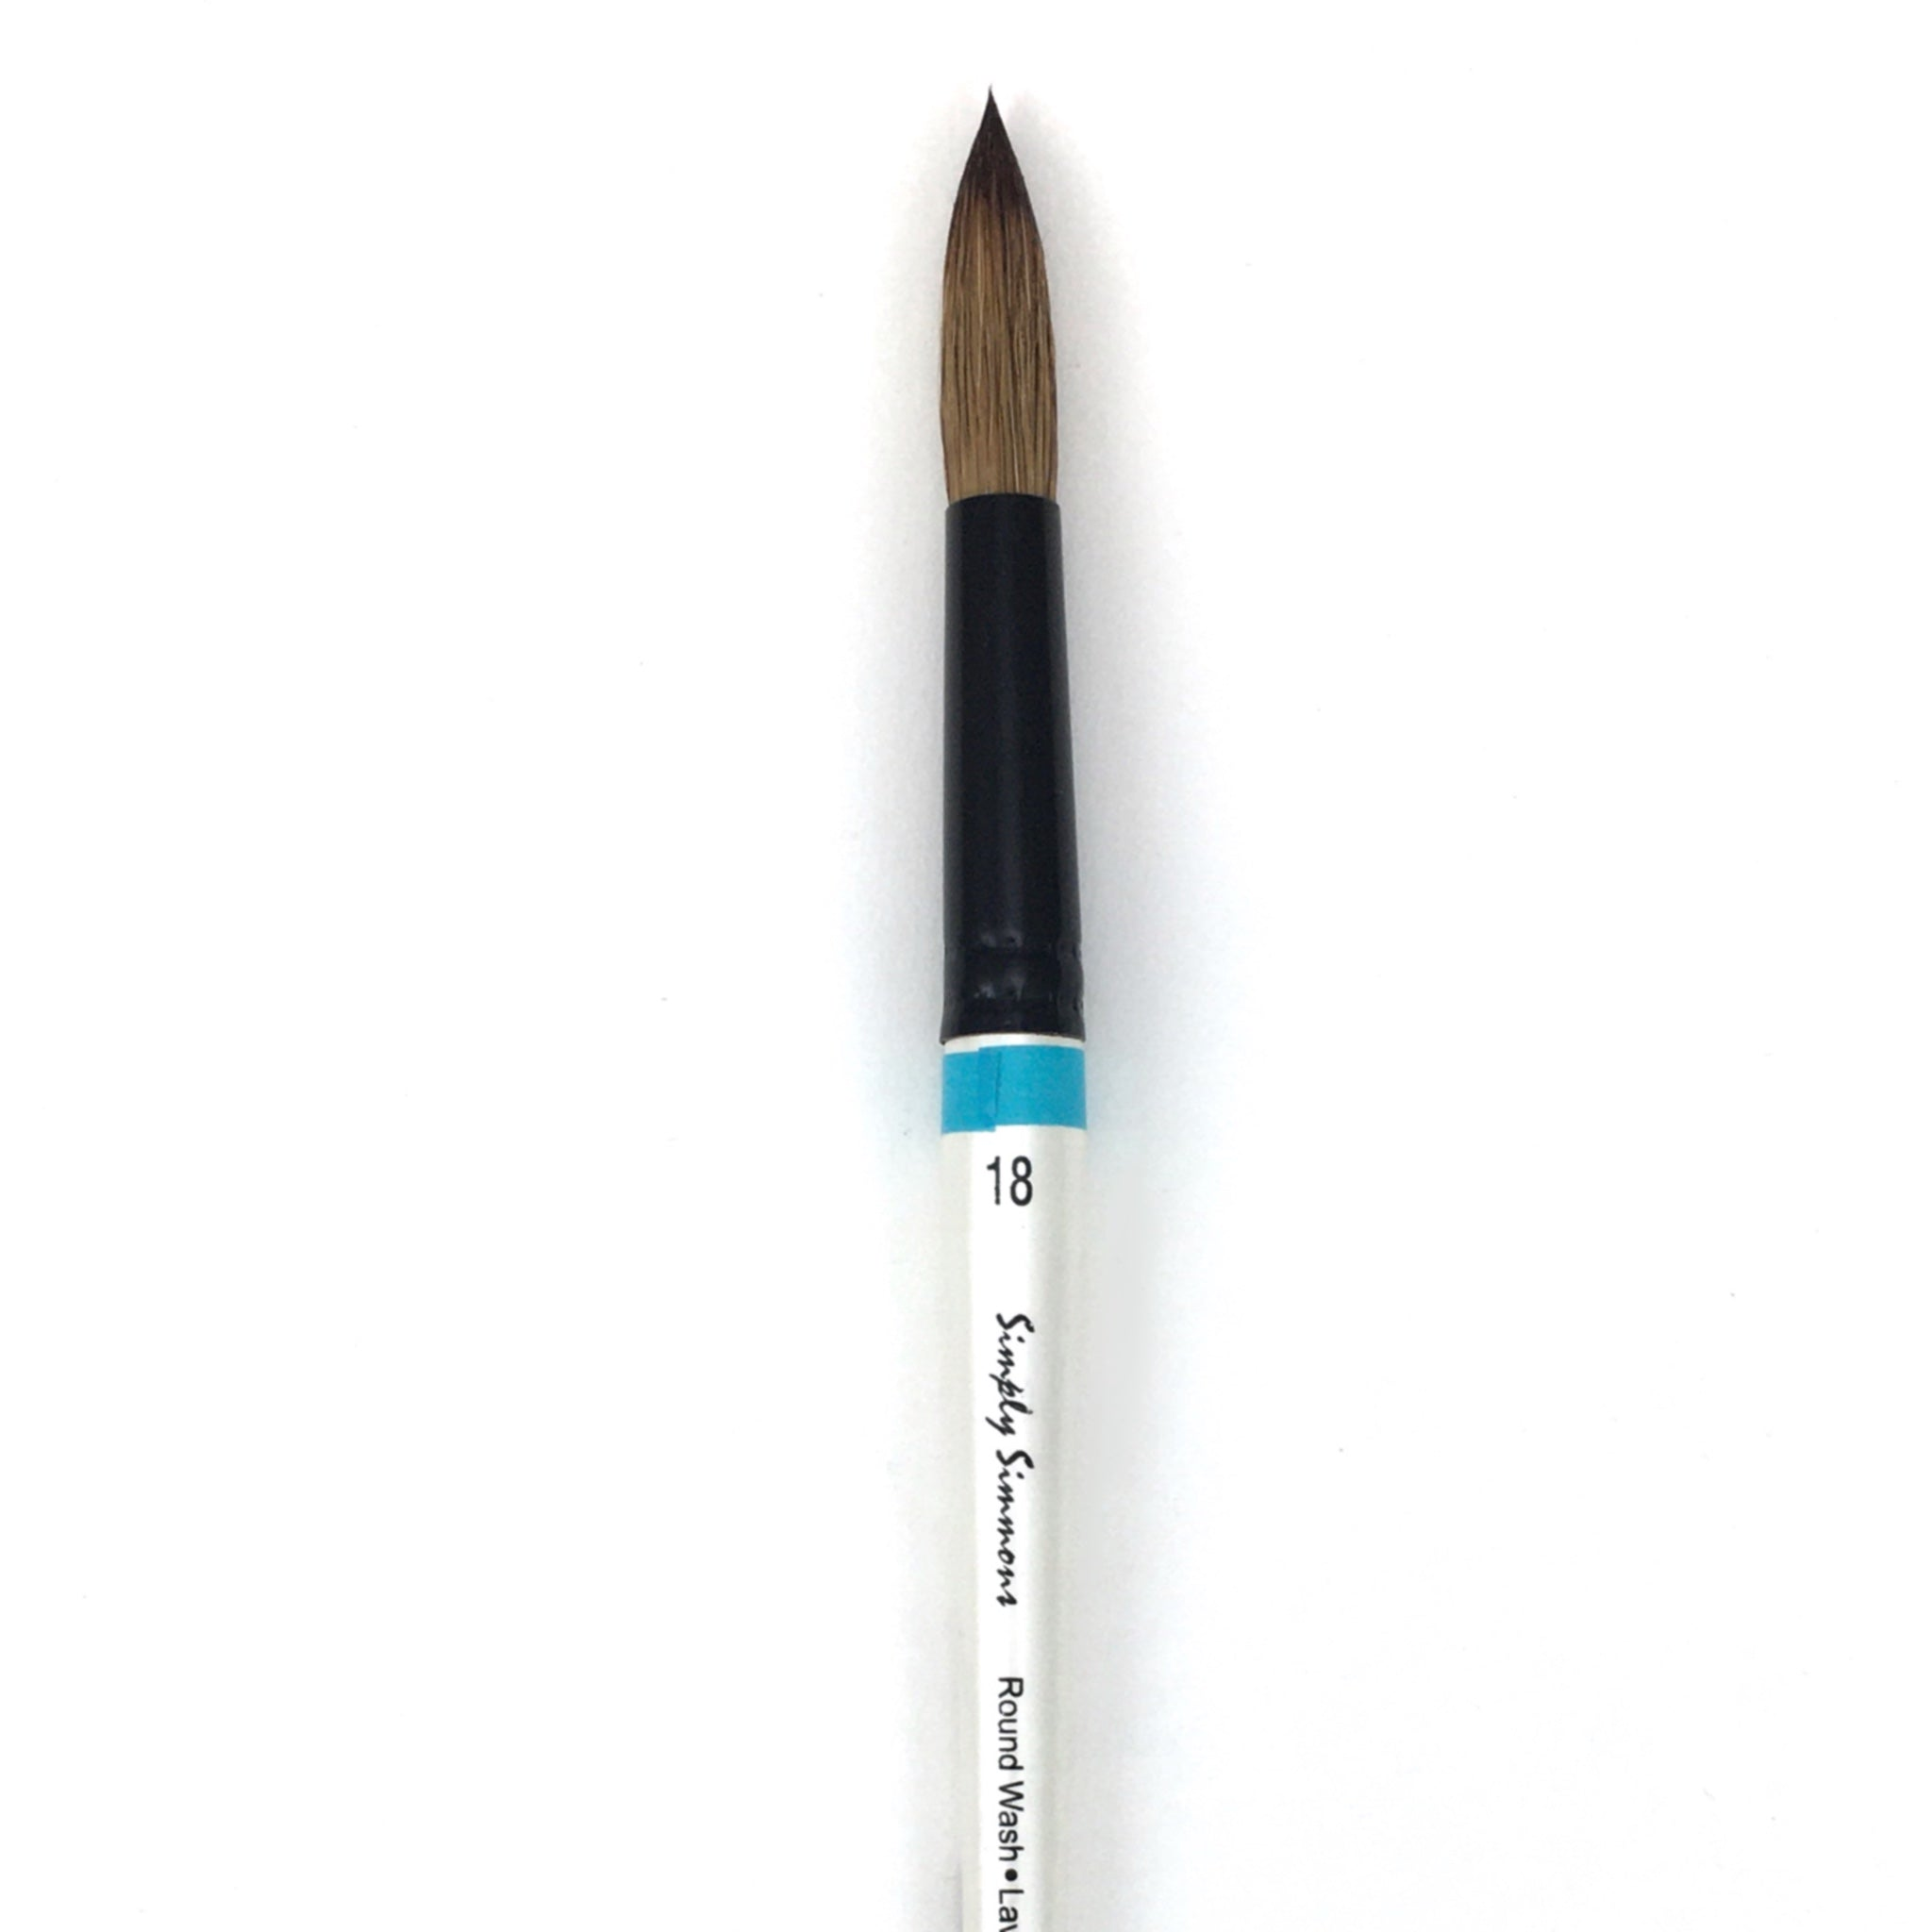 Robert Simmons Simply Simmons Watercolor Brush (Short Handle) - Round Wash / - #18 / - natural by Robert Simmons - K. A. Artist Shop